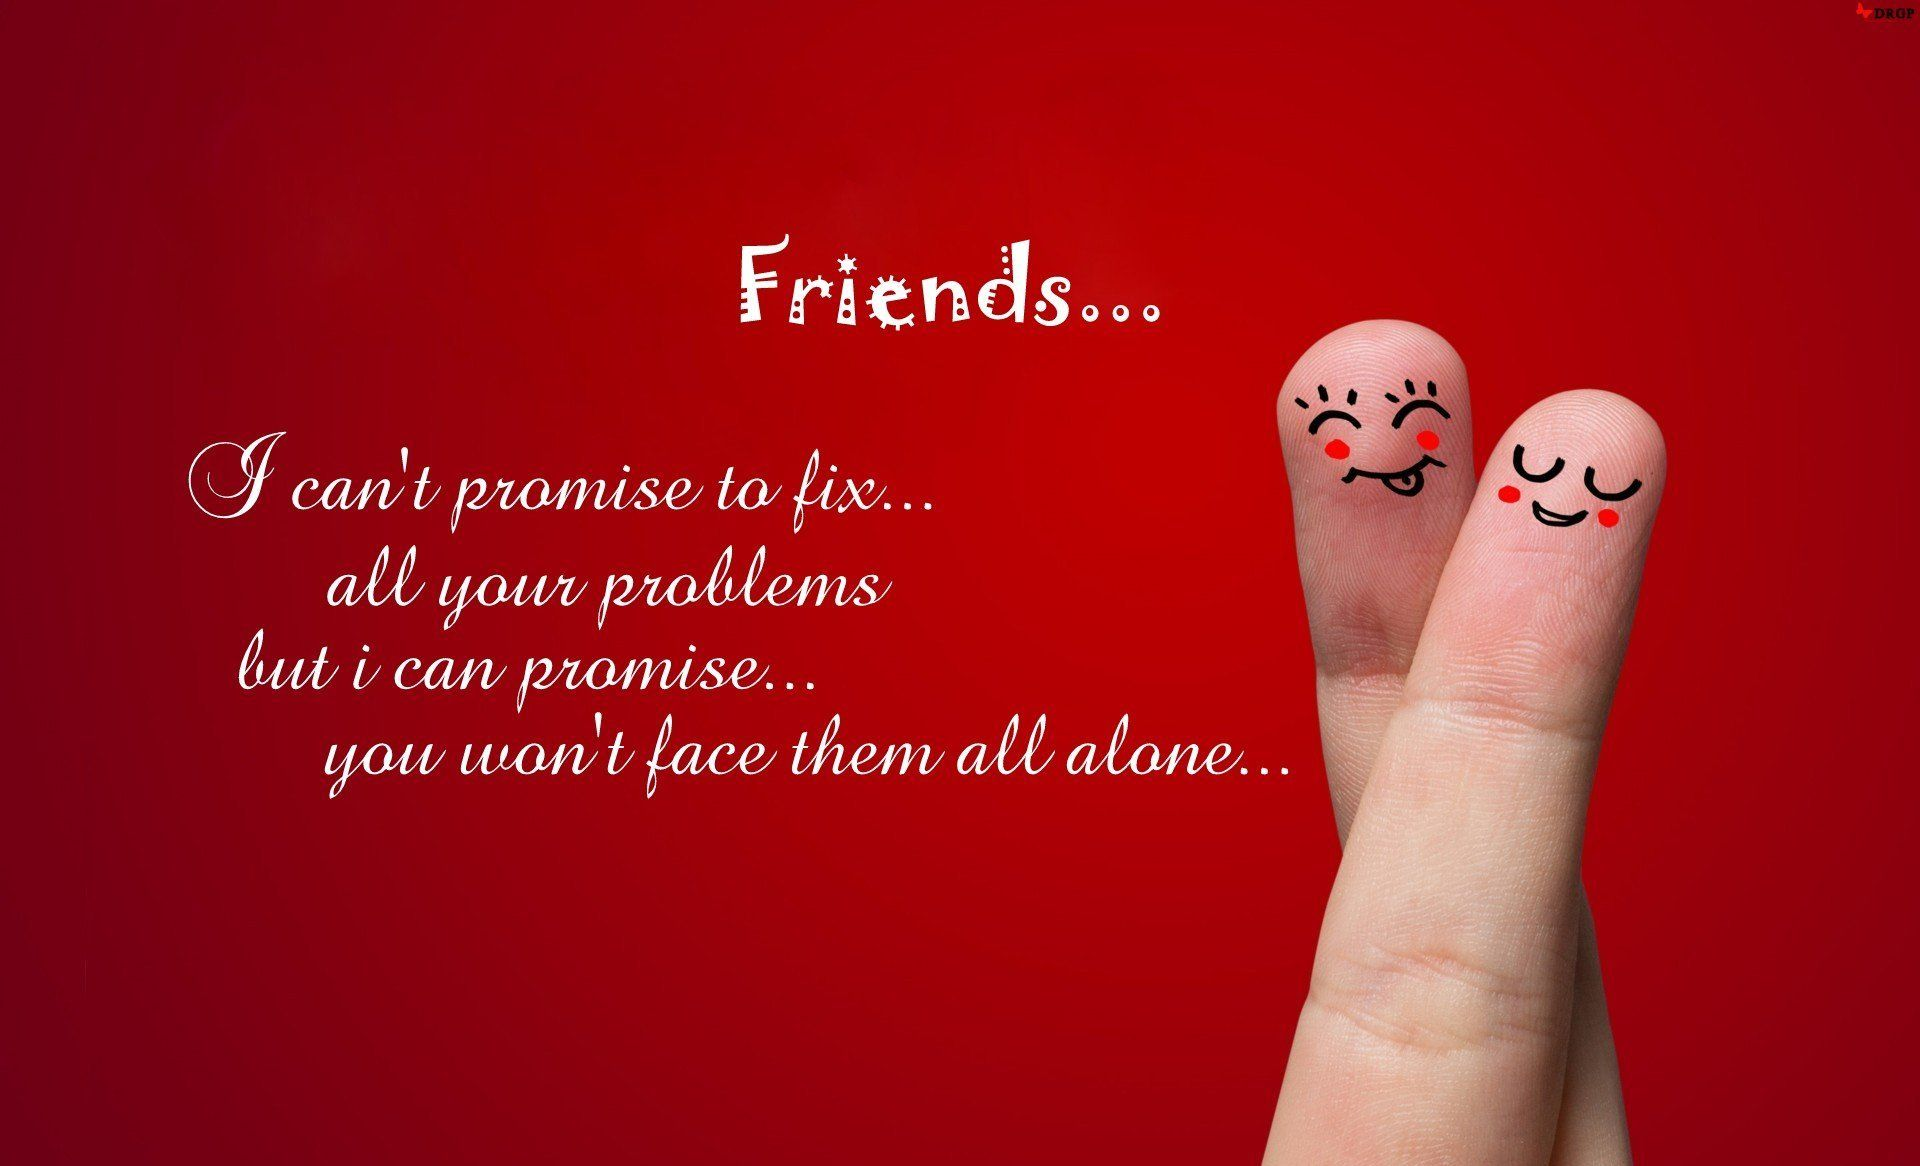 Quotes About Friendship With Images Best Friendship Quotes Collection  Text Messages Collection